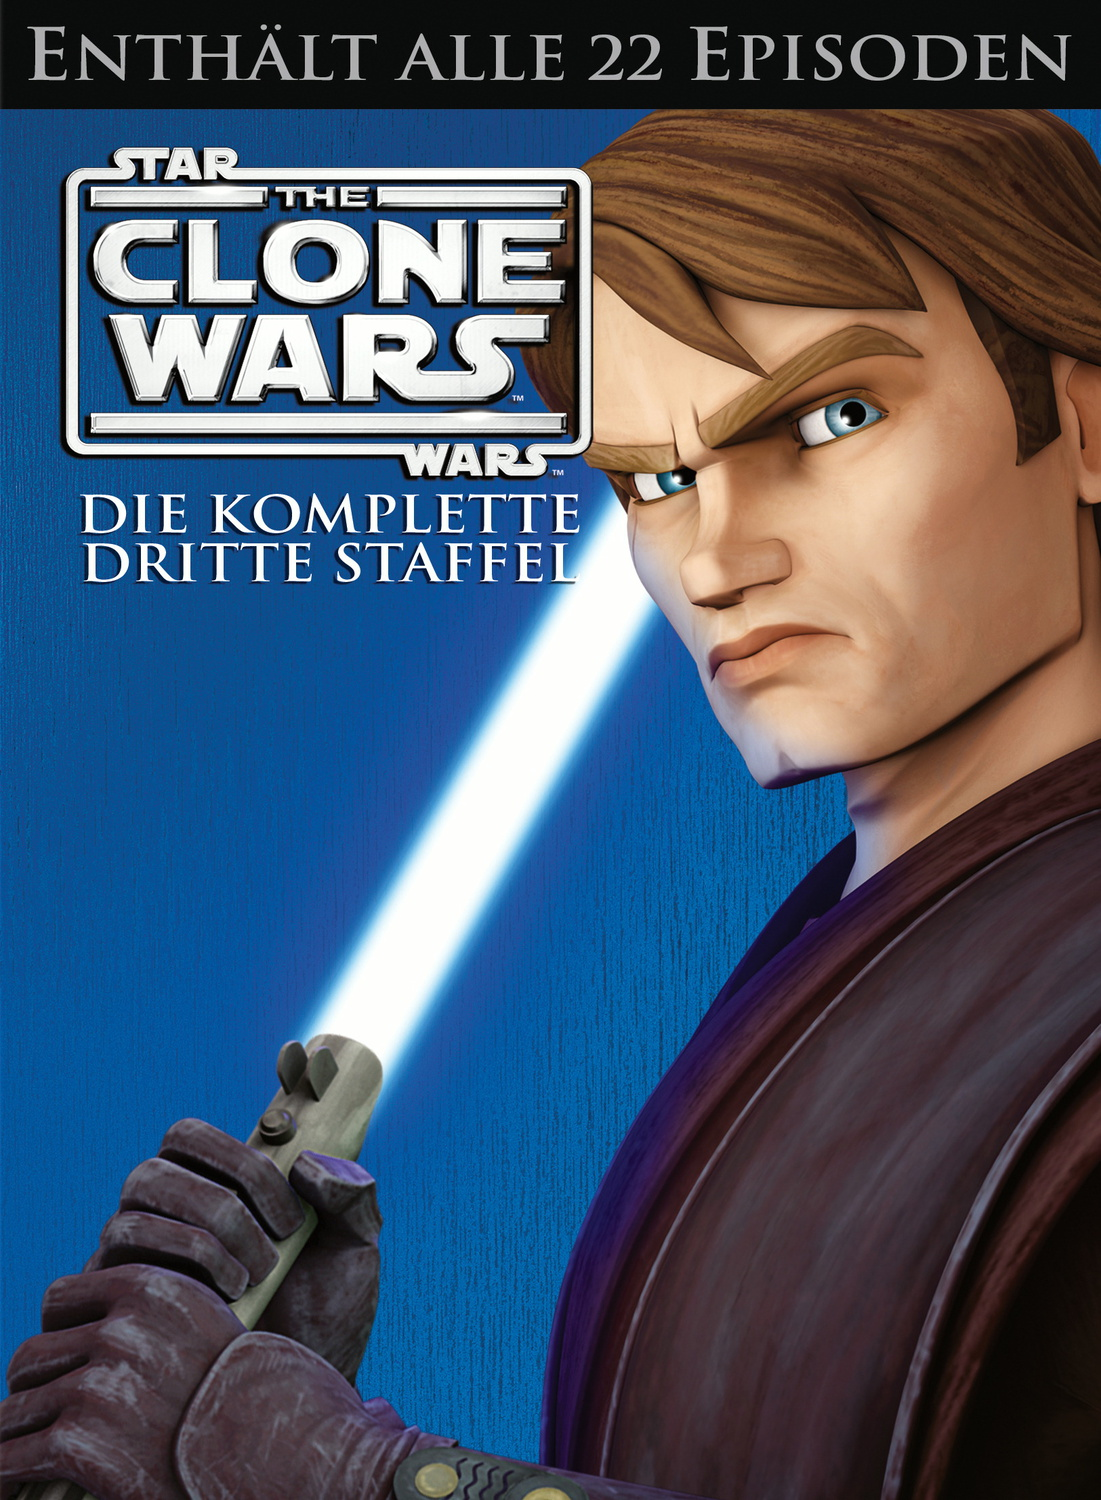 Star Wars: The Clone Wars - Die komplette dritte Staffel